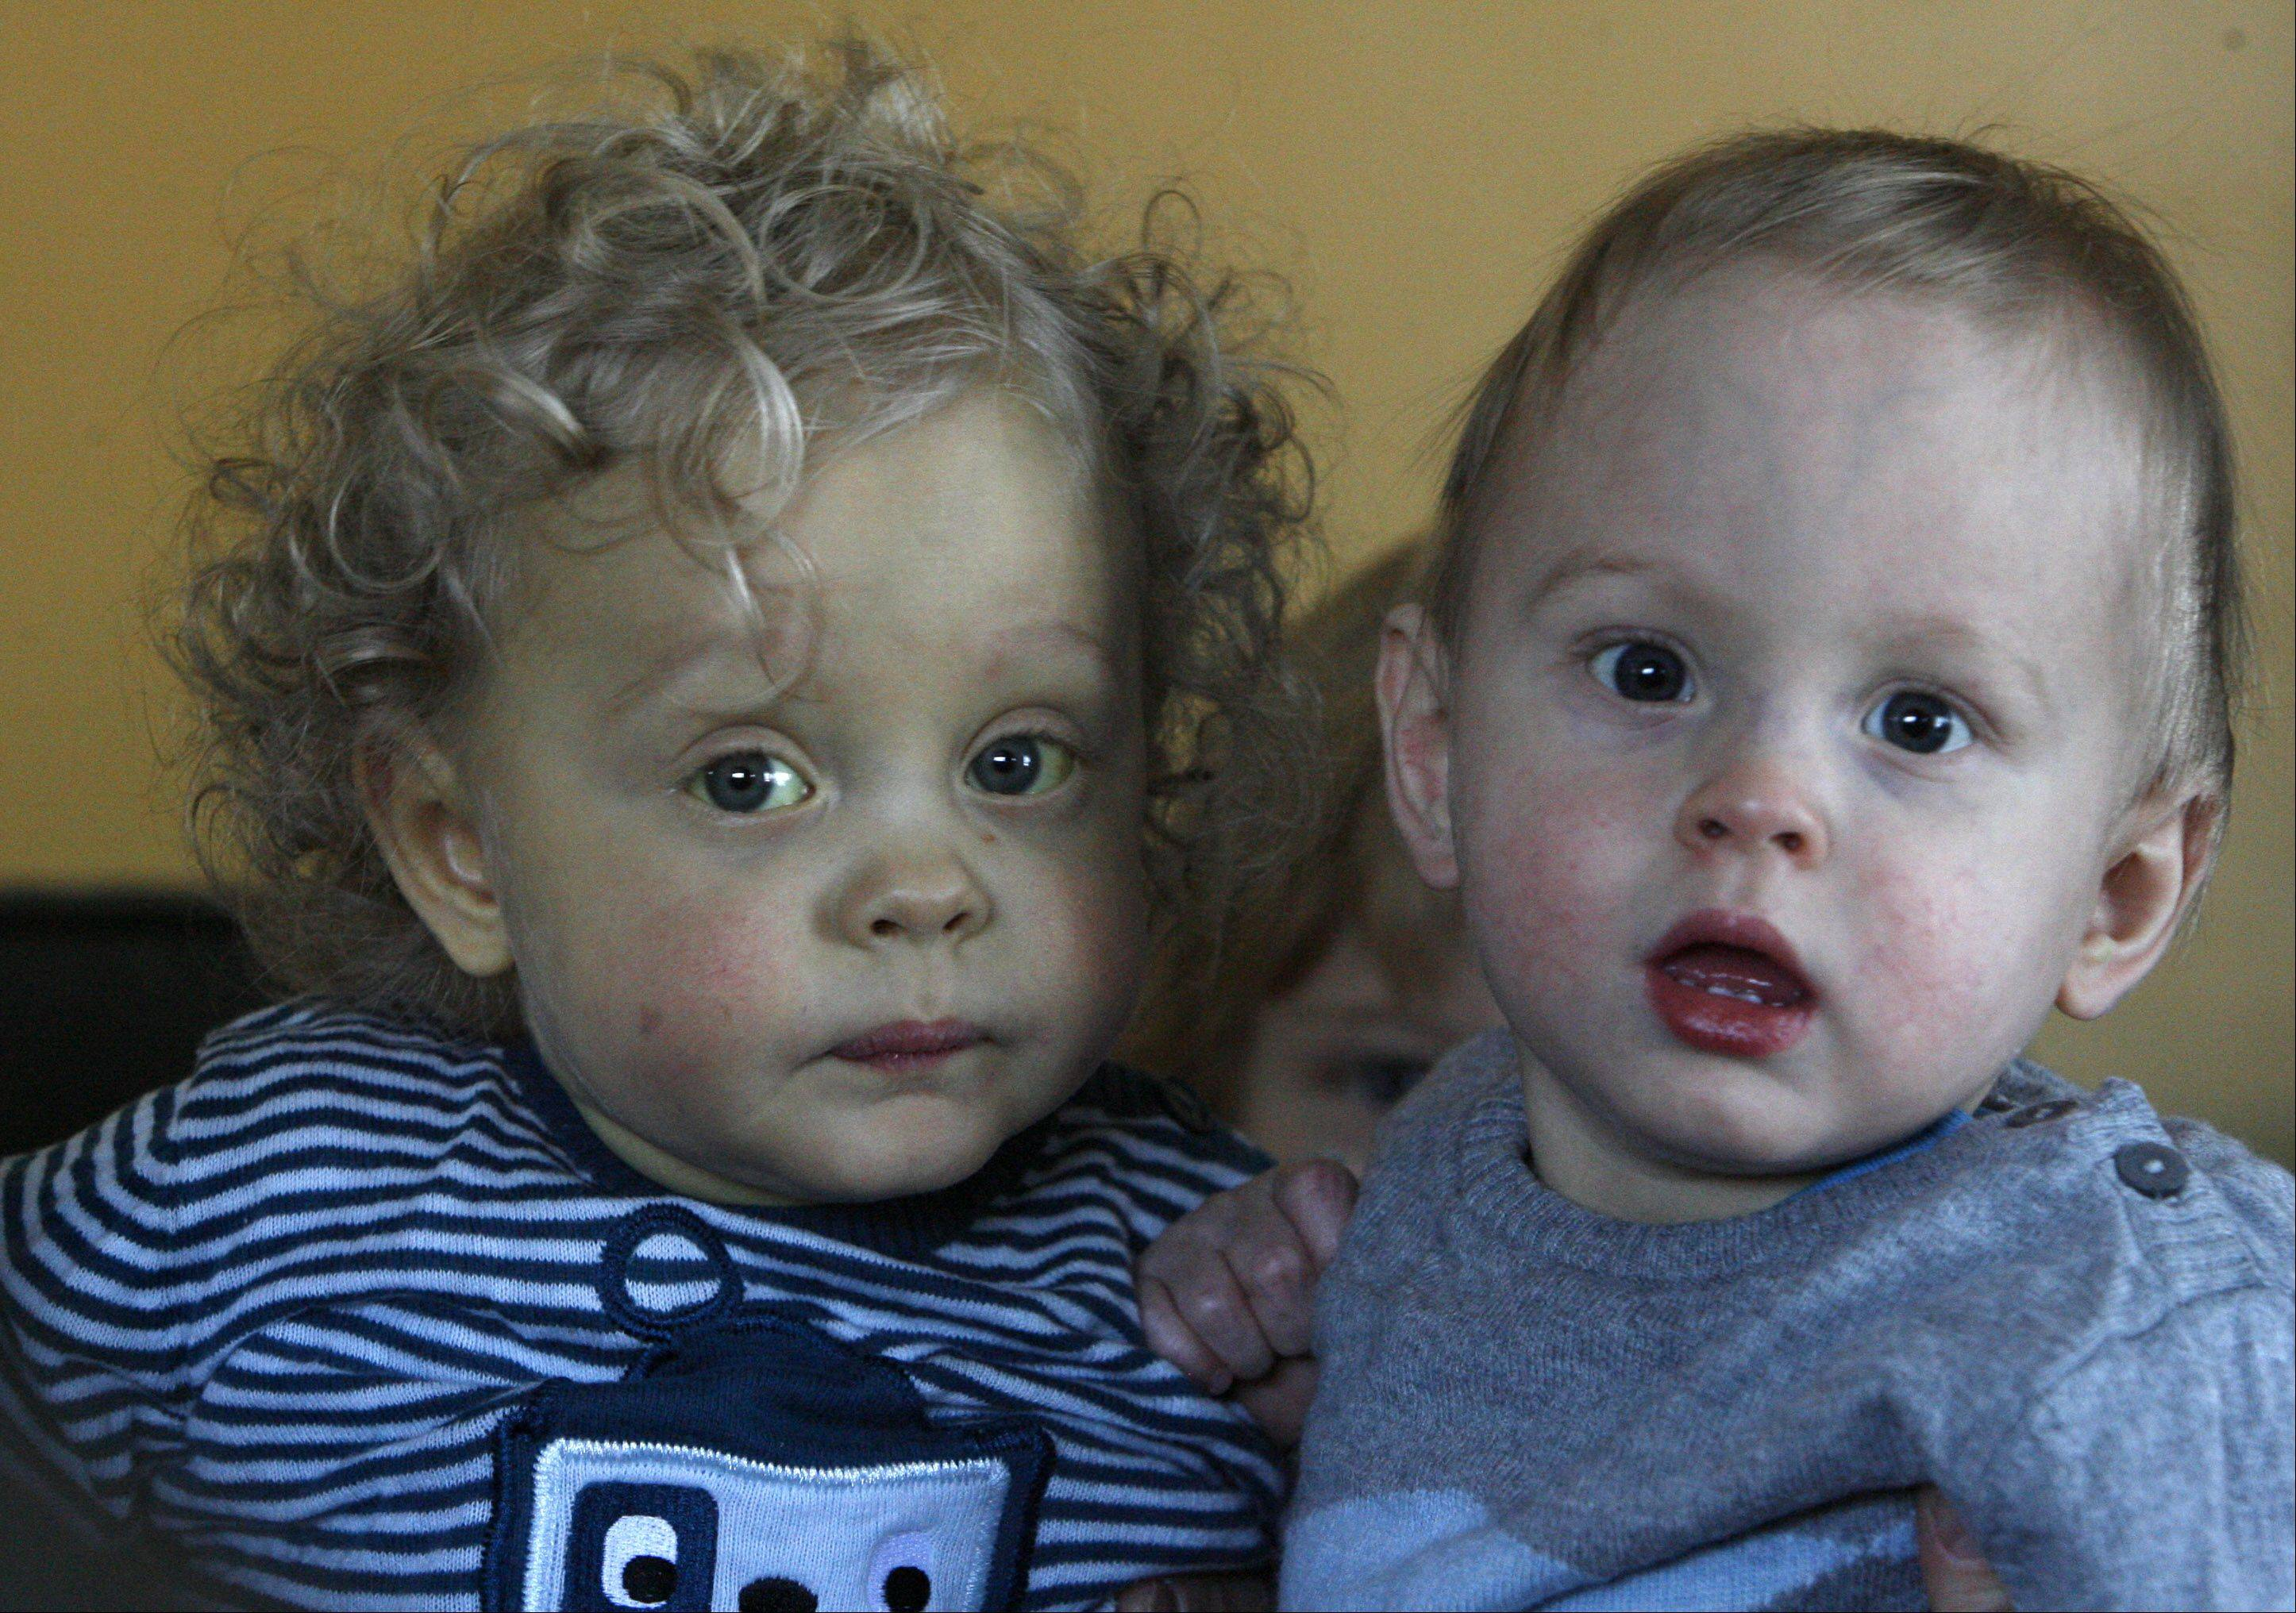 Then 17-month-old twins Jake, left, and Luke Swanson of Arlington Heights are the only documented case of twins in the U.S. or Canada that needed liver transplants due to a rare condition called biliary atresia.